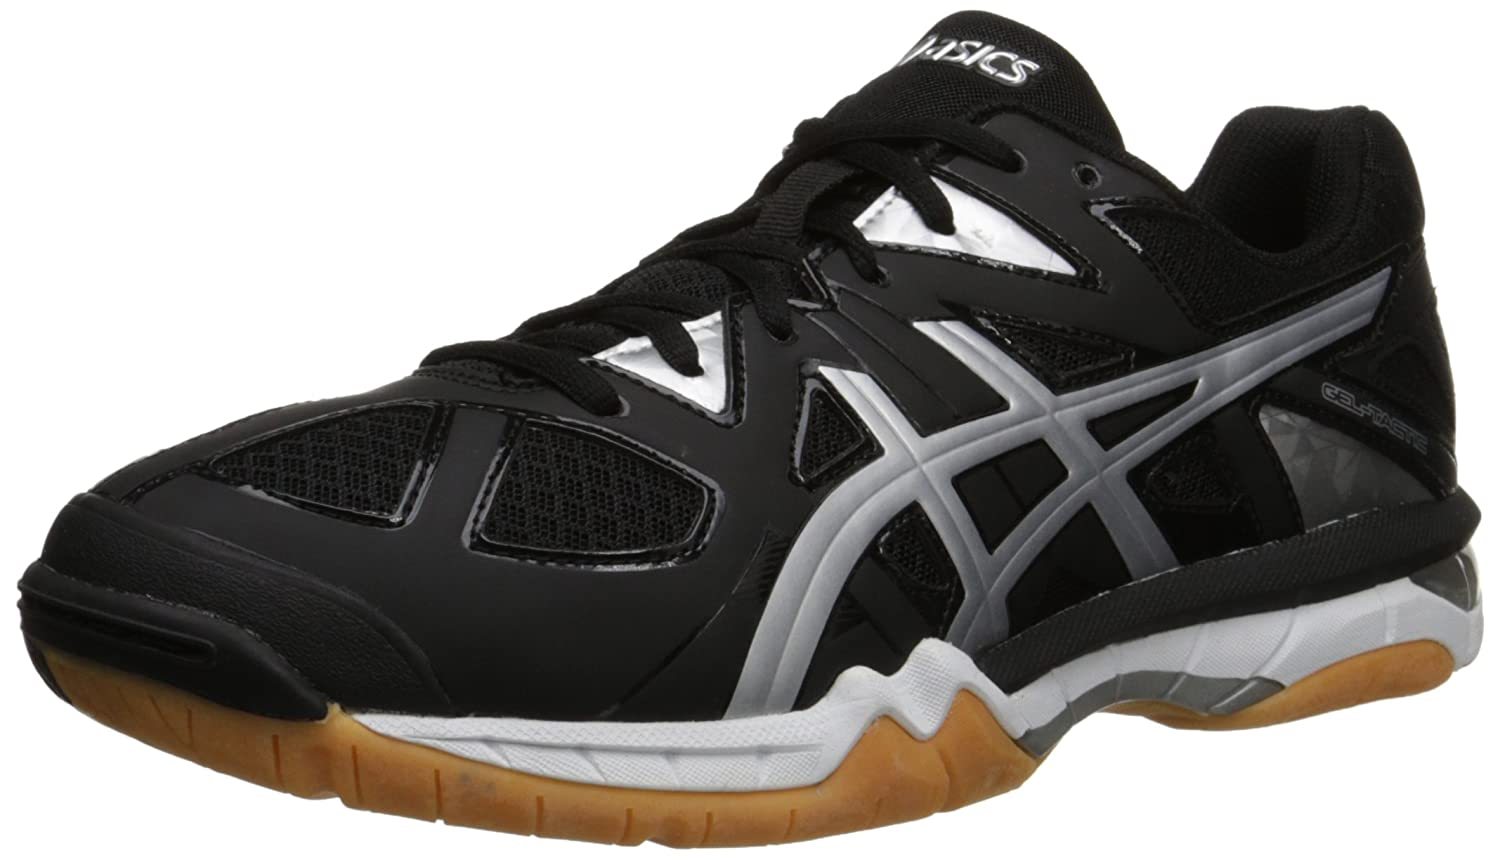 ASICS Men's GEL-Tactic Volleyball Shoe ASICS America Corporation GEL-Tactic-M